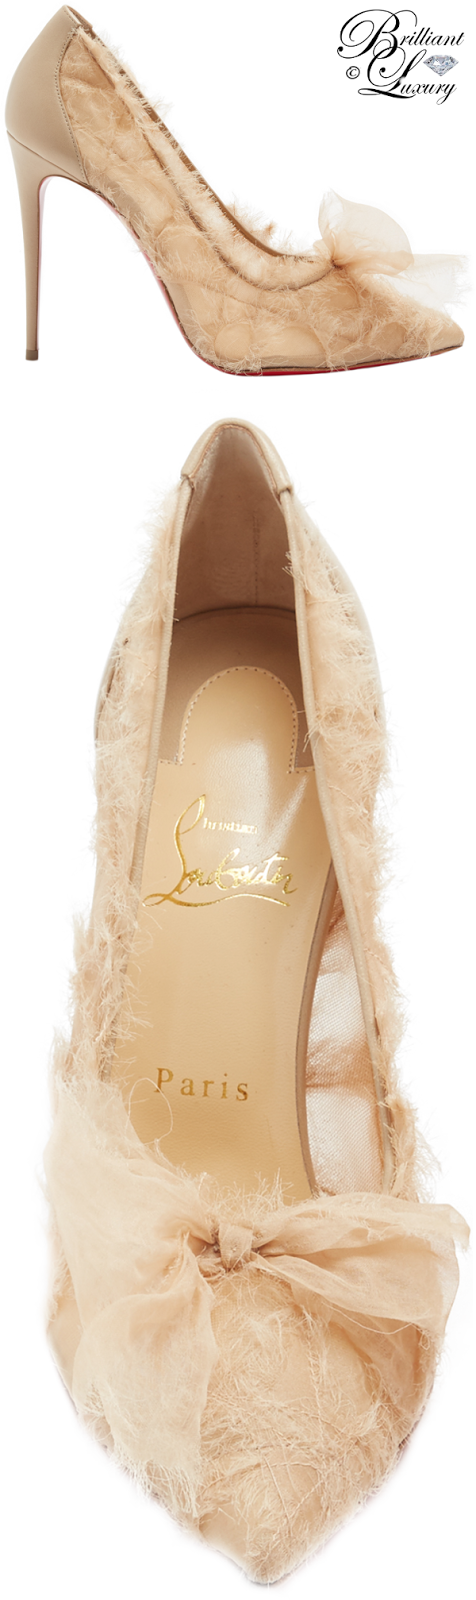 Brilliant Luxury ♦ Christian Louboutin Toufrou Pumps